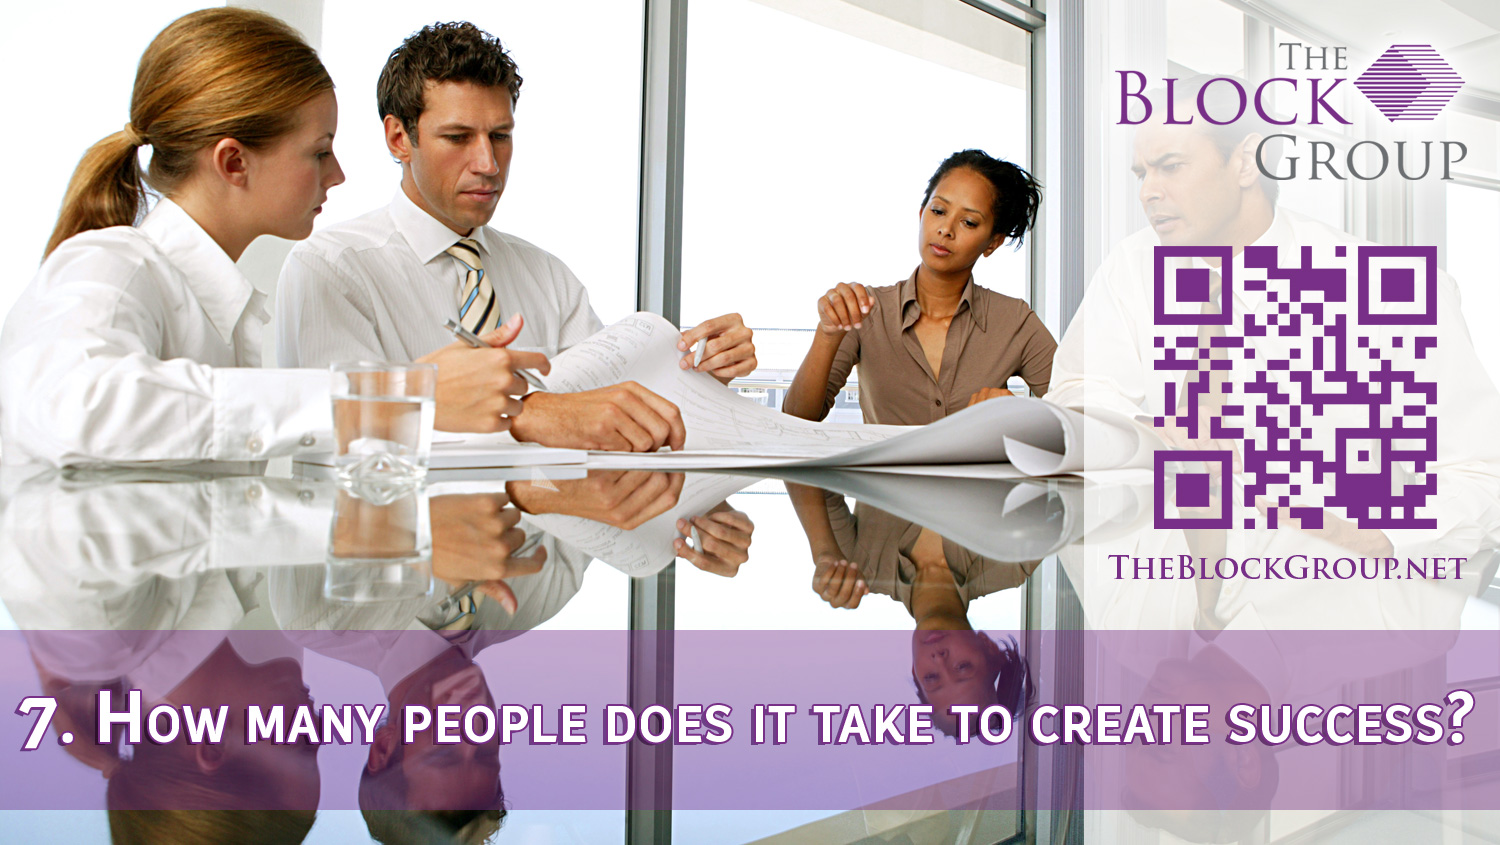 007.-How-many-people-does-it-take-to-create-success